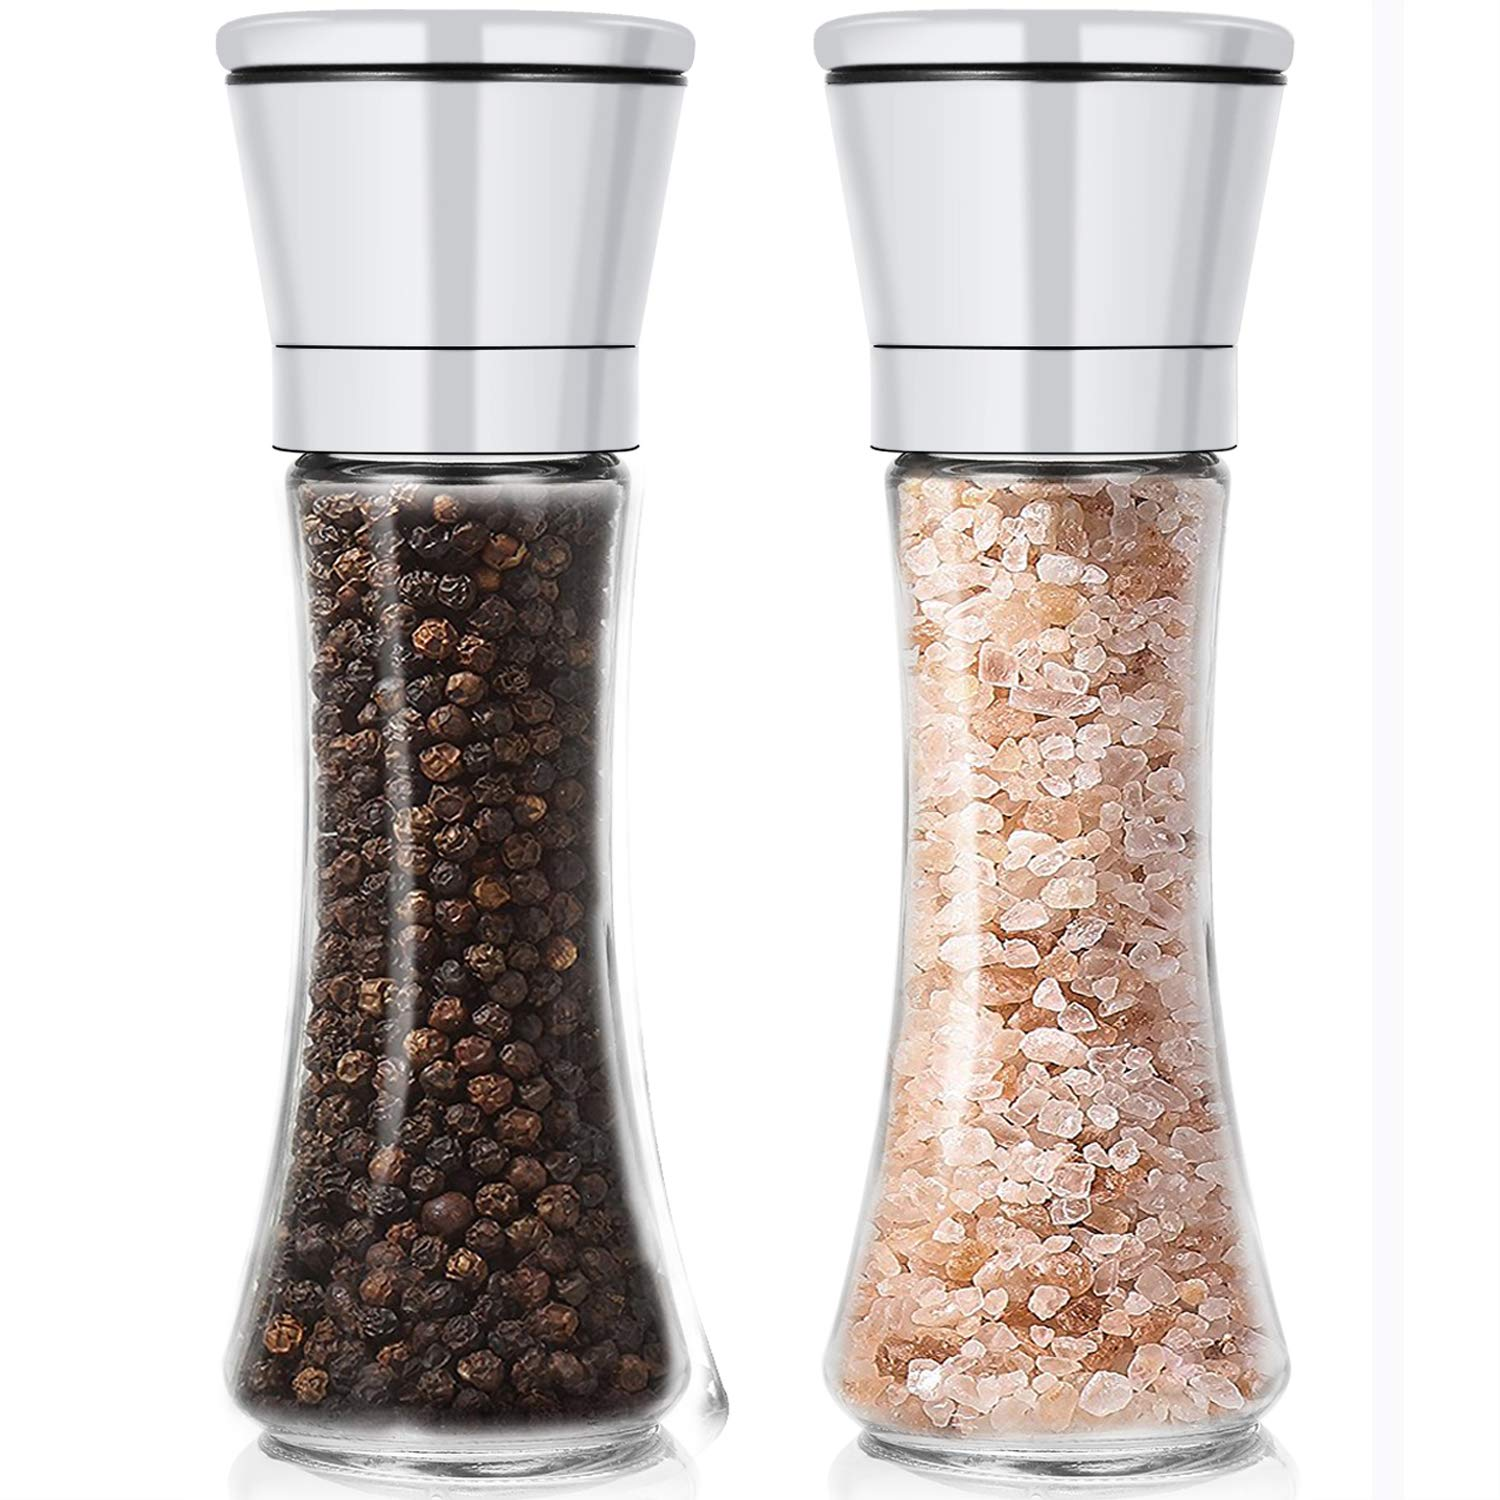 Manual Salt and Pepper Mill with Adjustable Coarseness - Salt and Pepper Grinder Set with High Premium Glass Bottle Strong Ceramic Rotors - Fully Removable and Easy to Clean